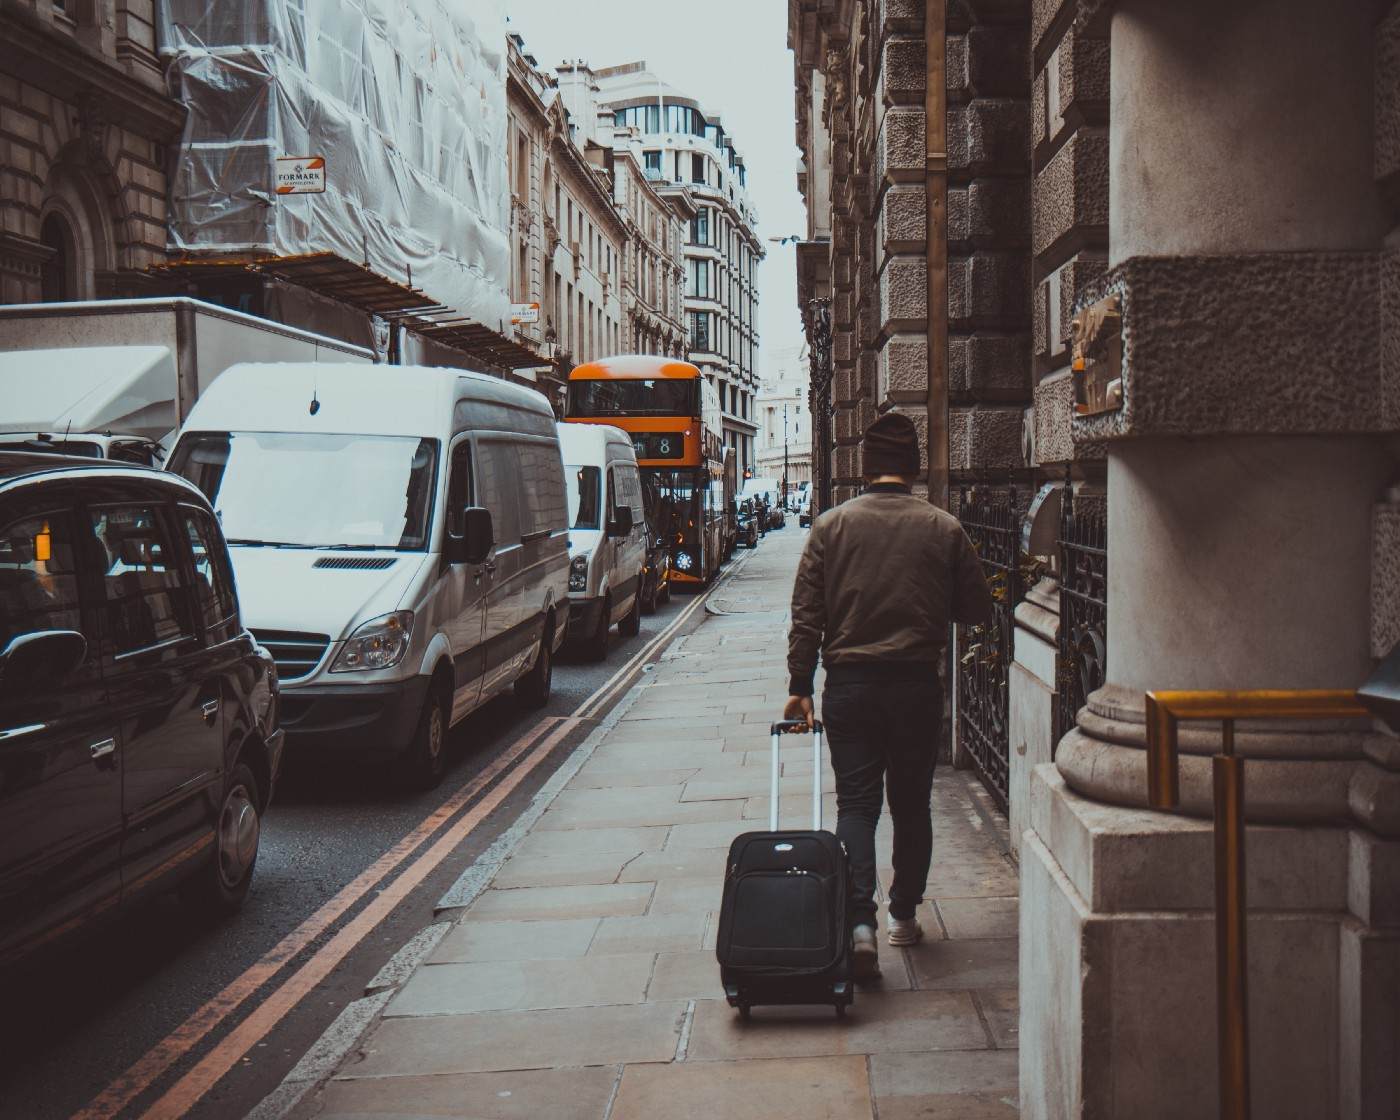 Person pulling a black carry-on suitcase while walking on the pavement in London city, United Kingdom.